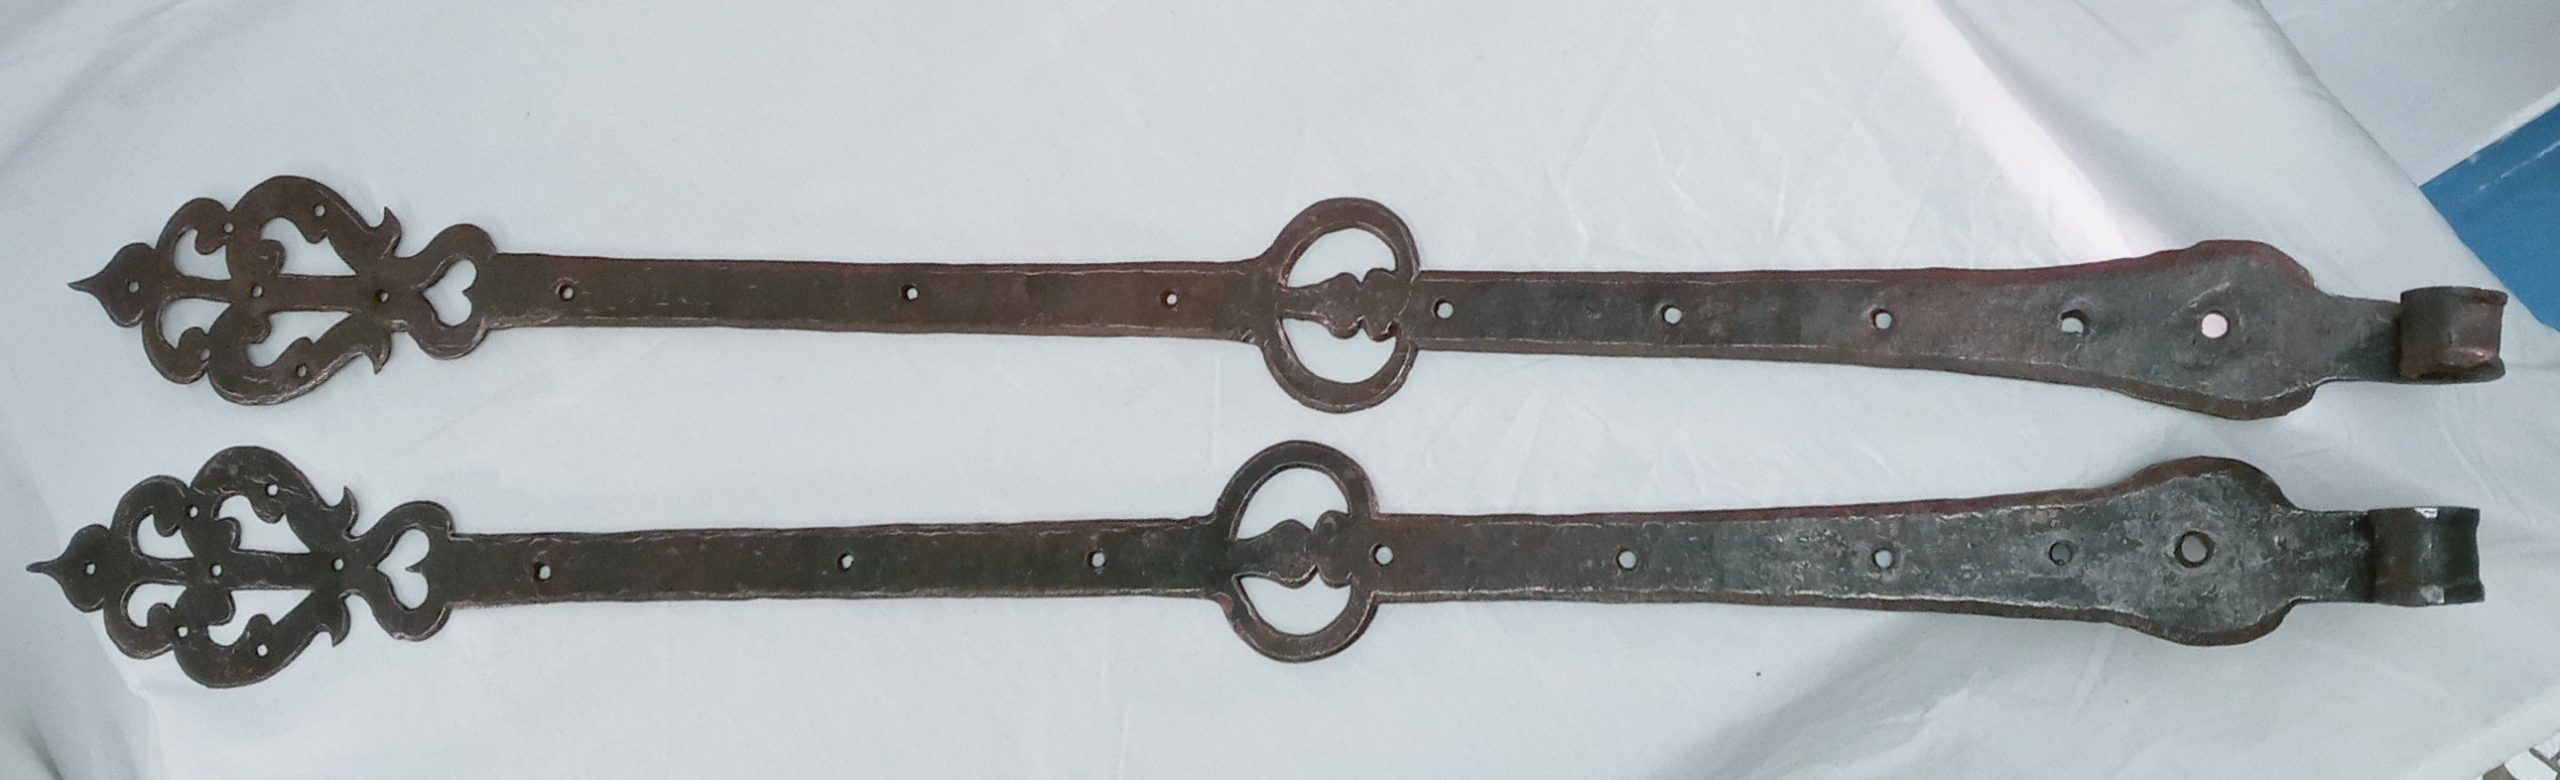 200-36185 Pair of Hand Wrought Iron Strap Hinges Image